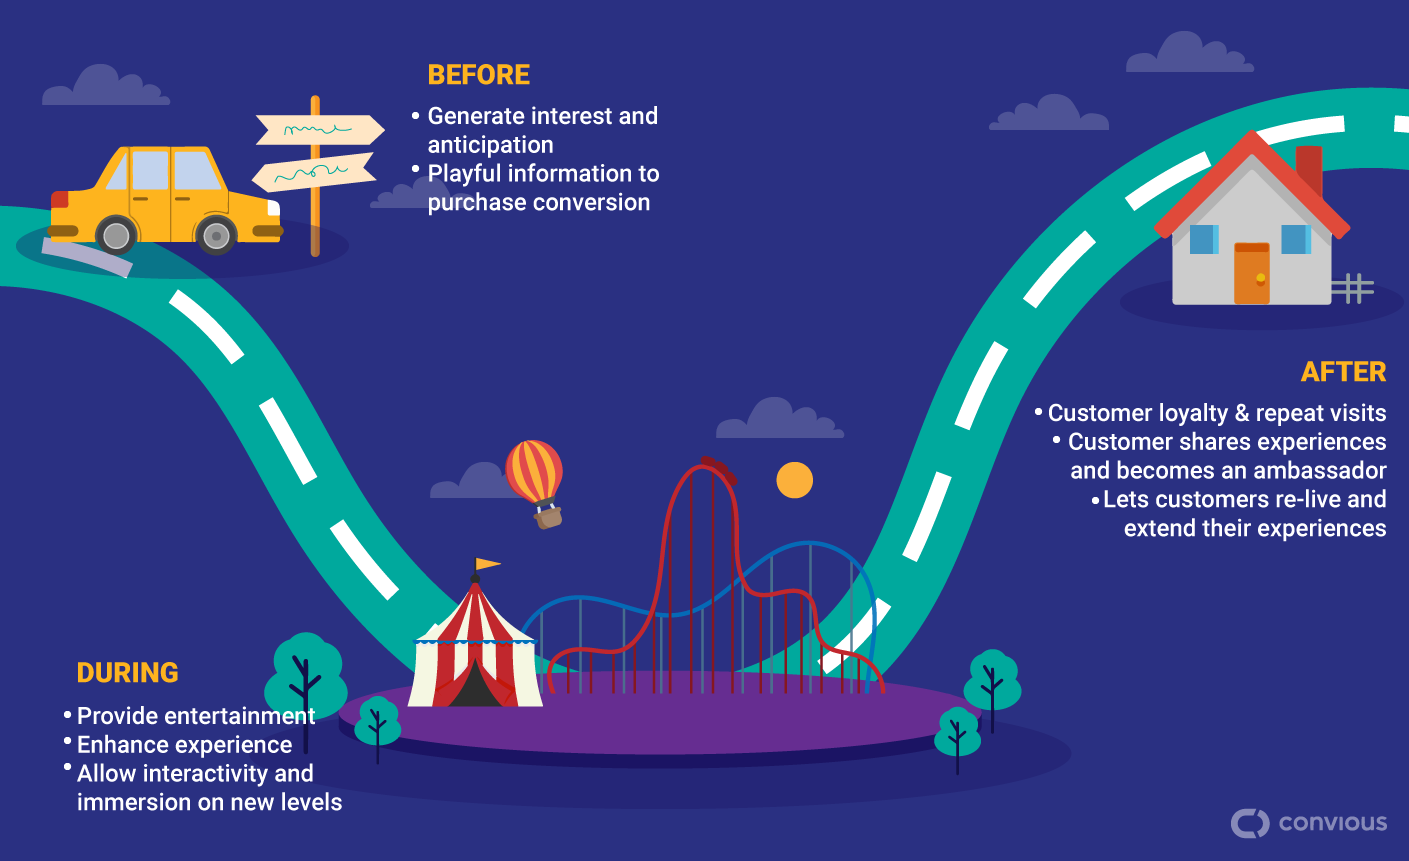 Gamification strategies before, during and after the leisure experience.